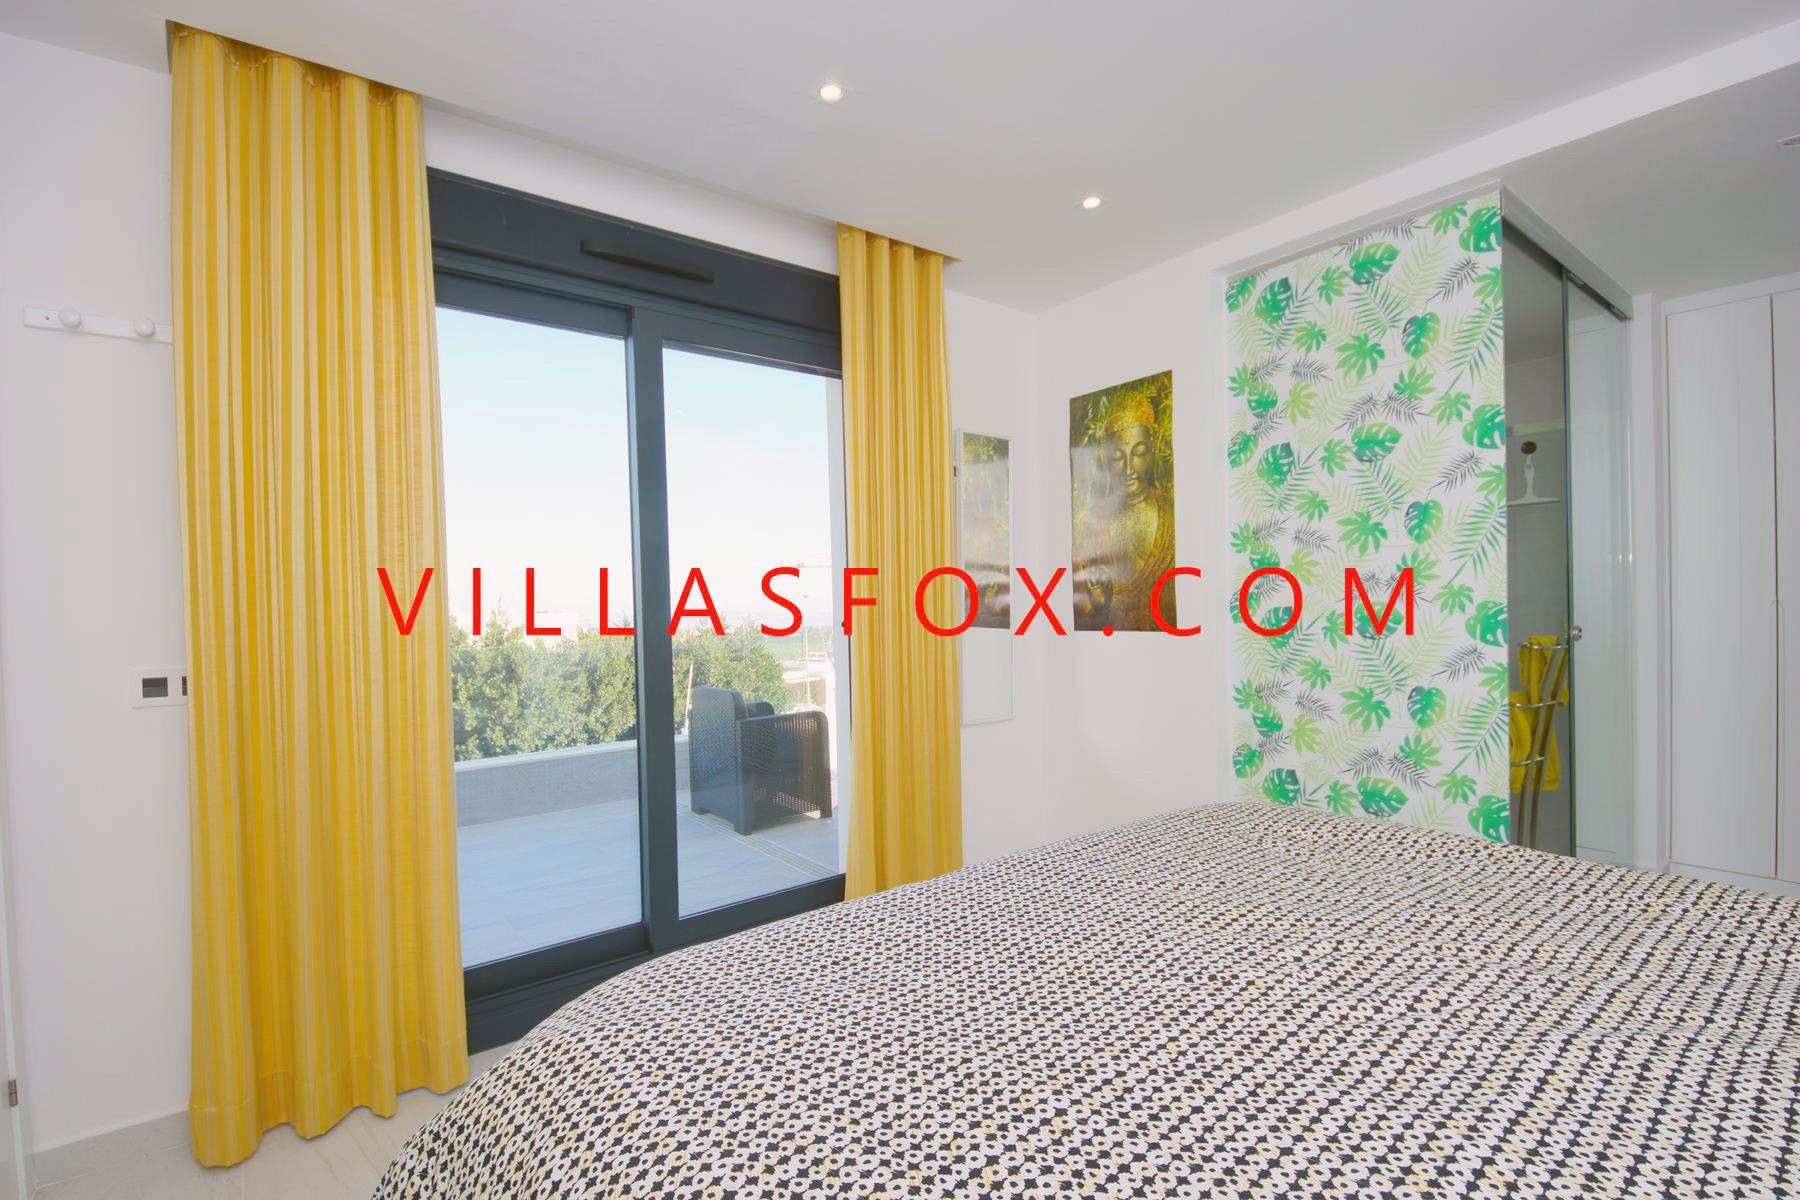 Natura Villas Resale Opportunity - San Miguel de Salinas - detached villa great views